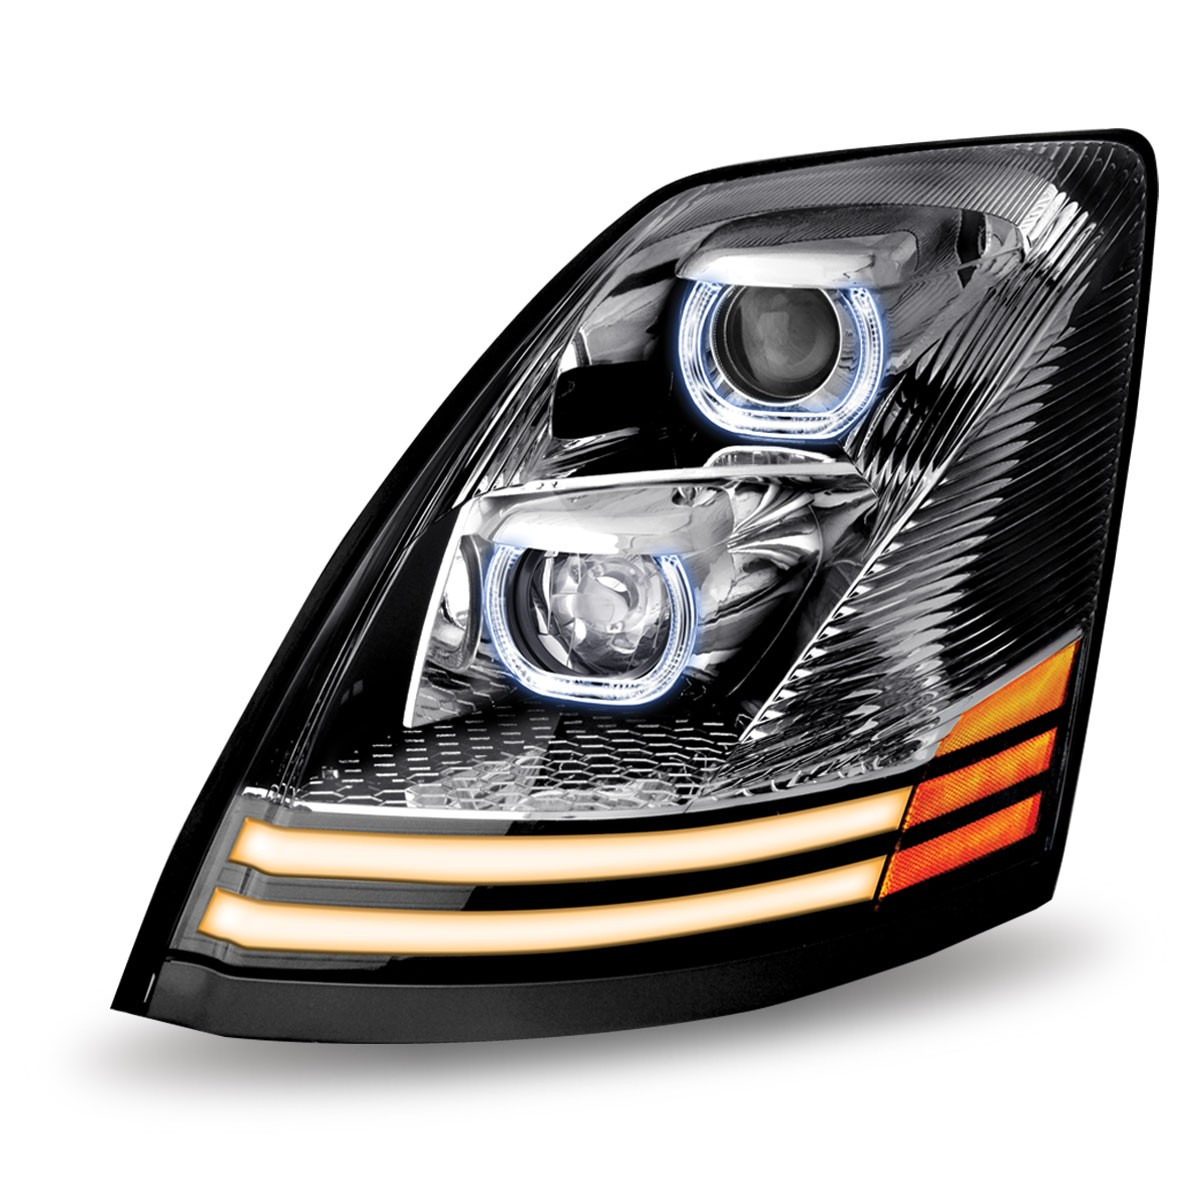 LED Turn Signal /& Running Light Dual Function Chrome Headlights 6 LED-12 Volt